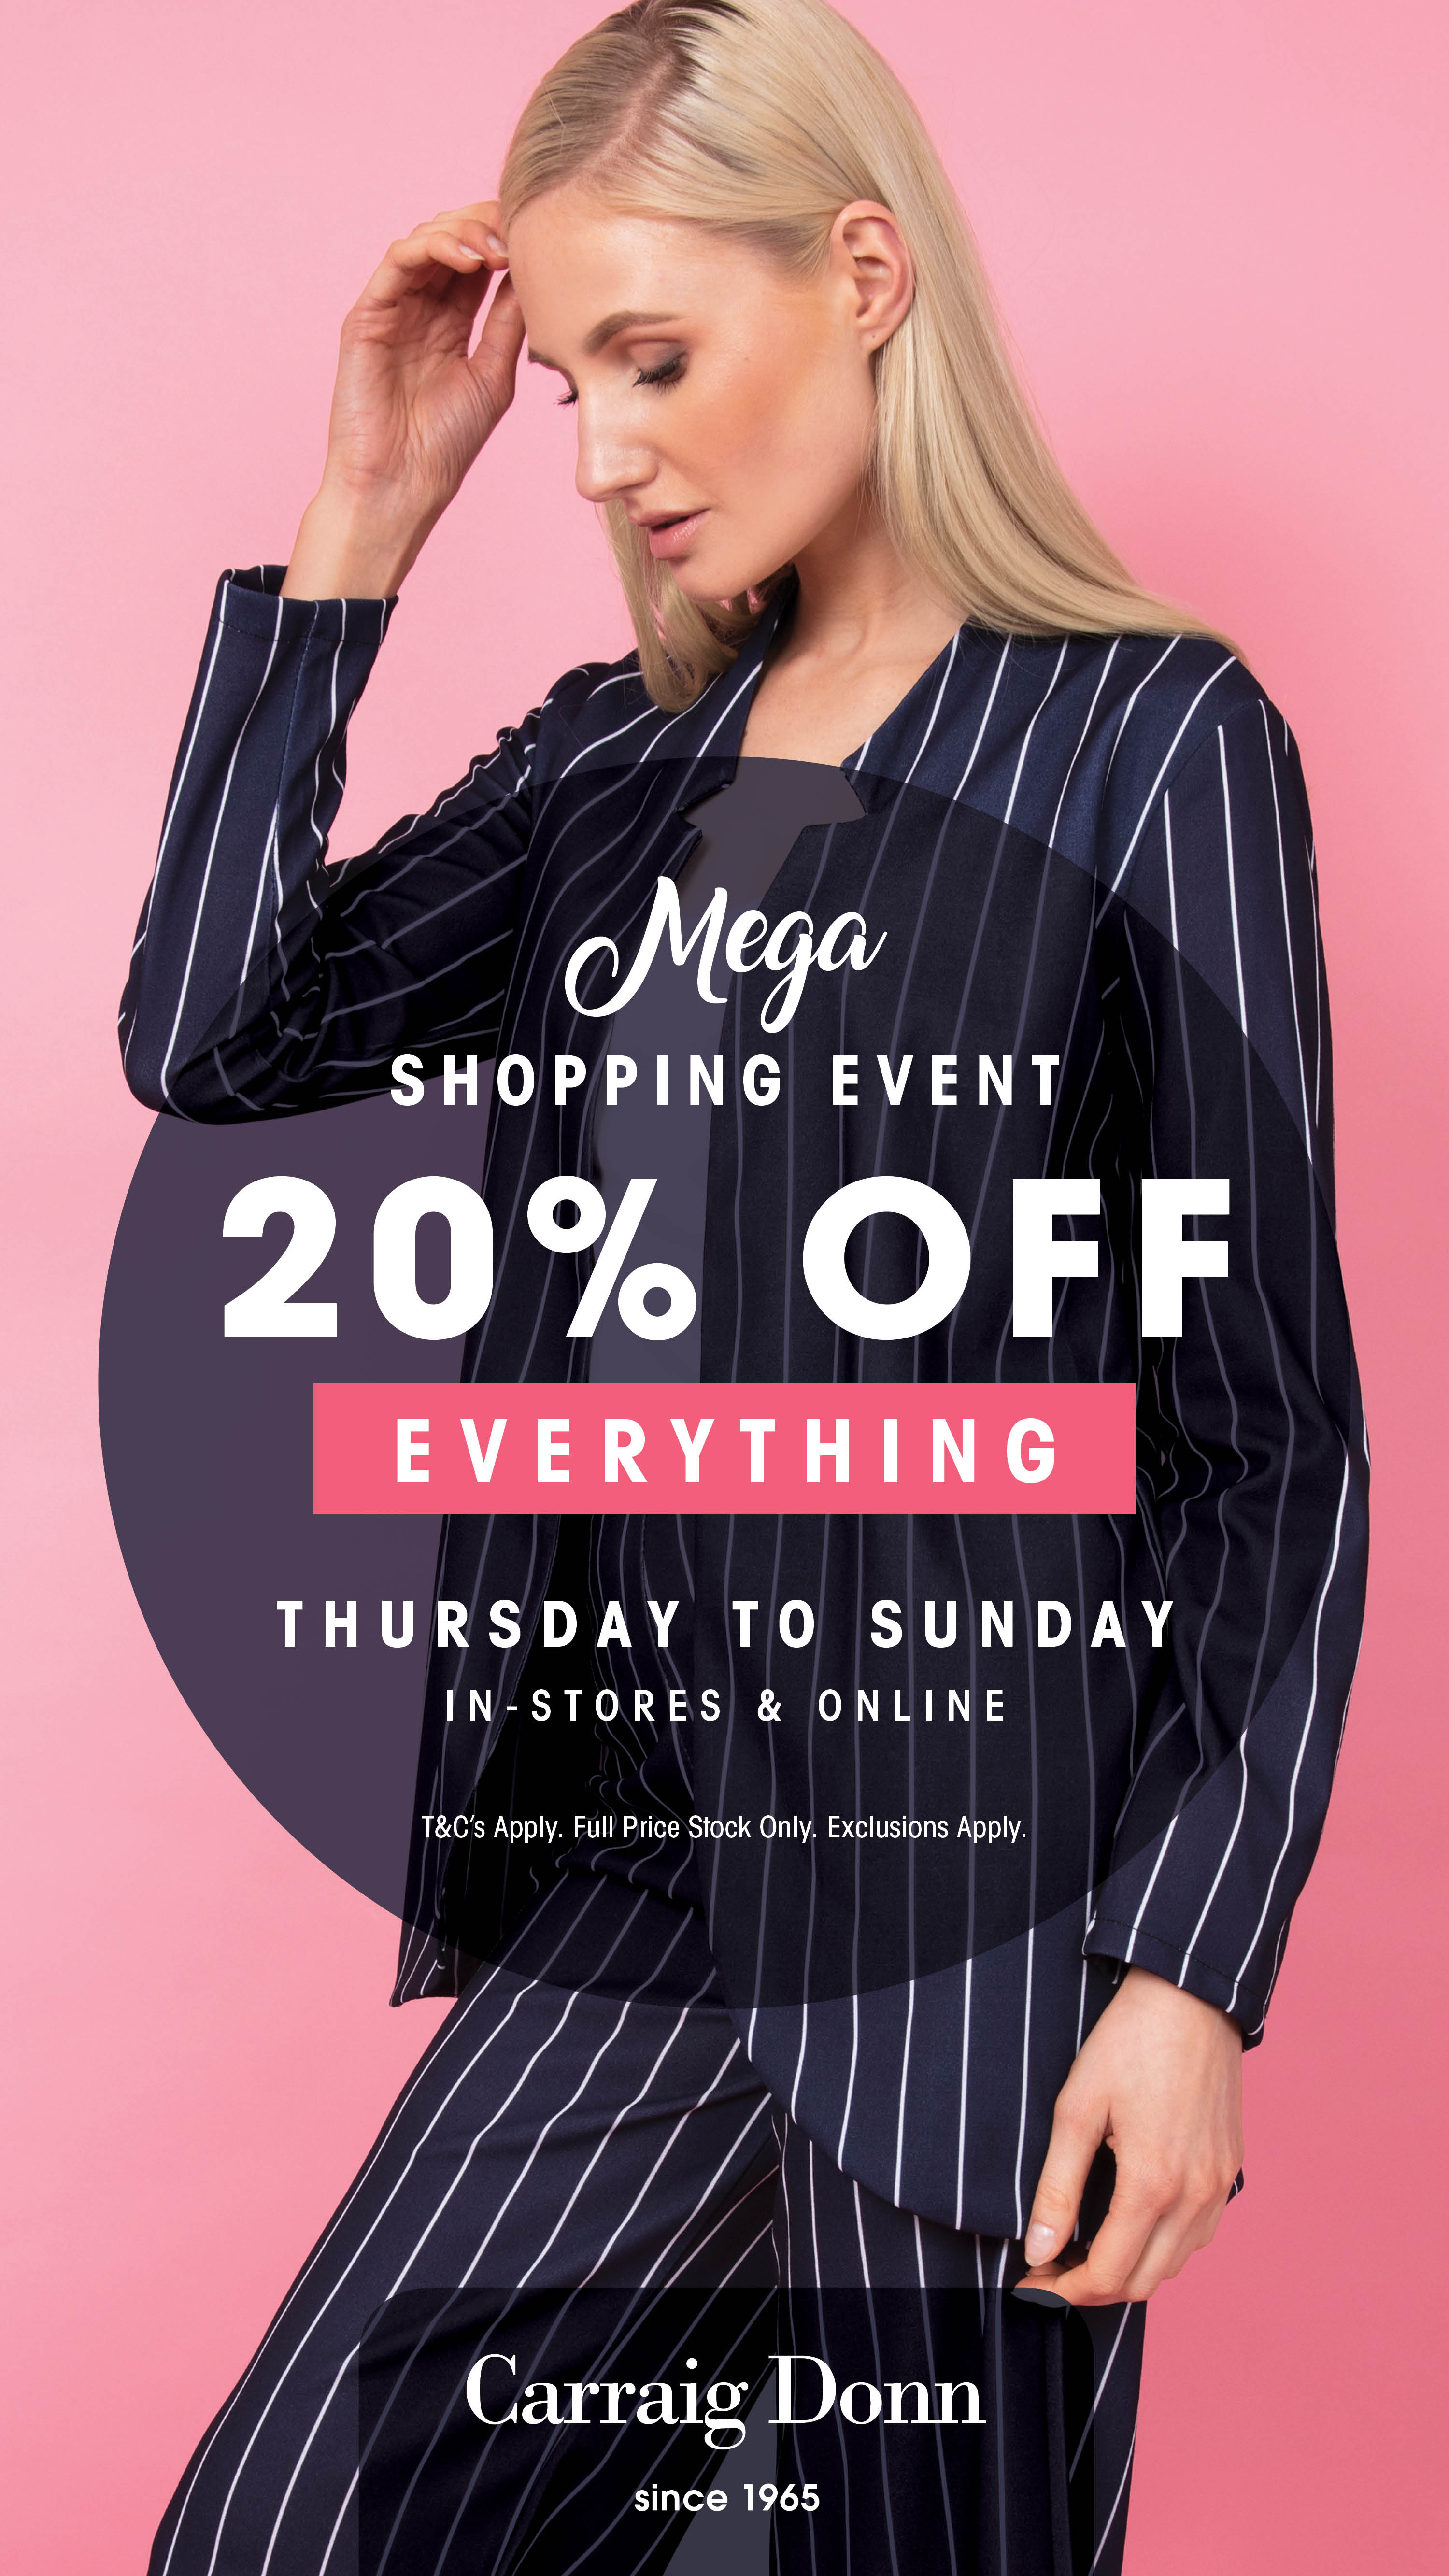 MEGA Shopping Event now on in Carraig Donn stores nationwide! 20% off everything from Thursday until midnight Sunday in stores and online!